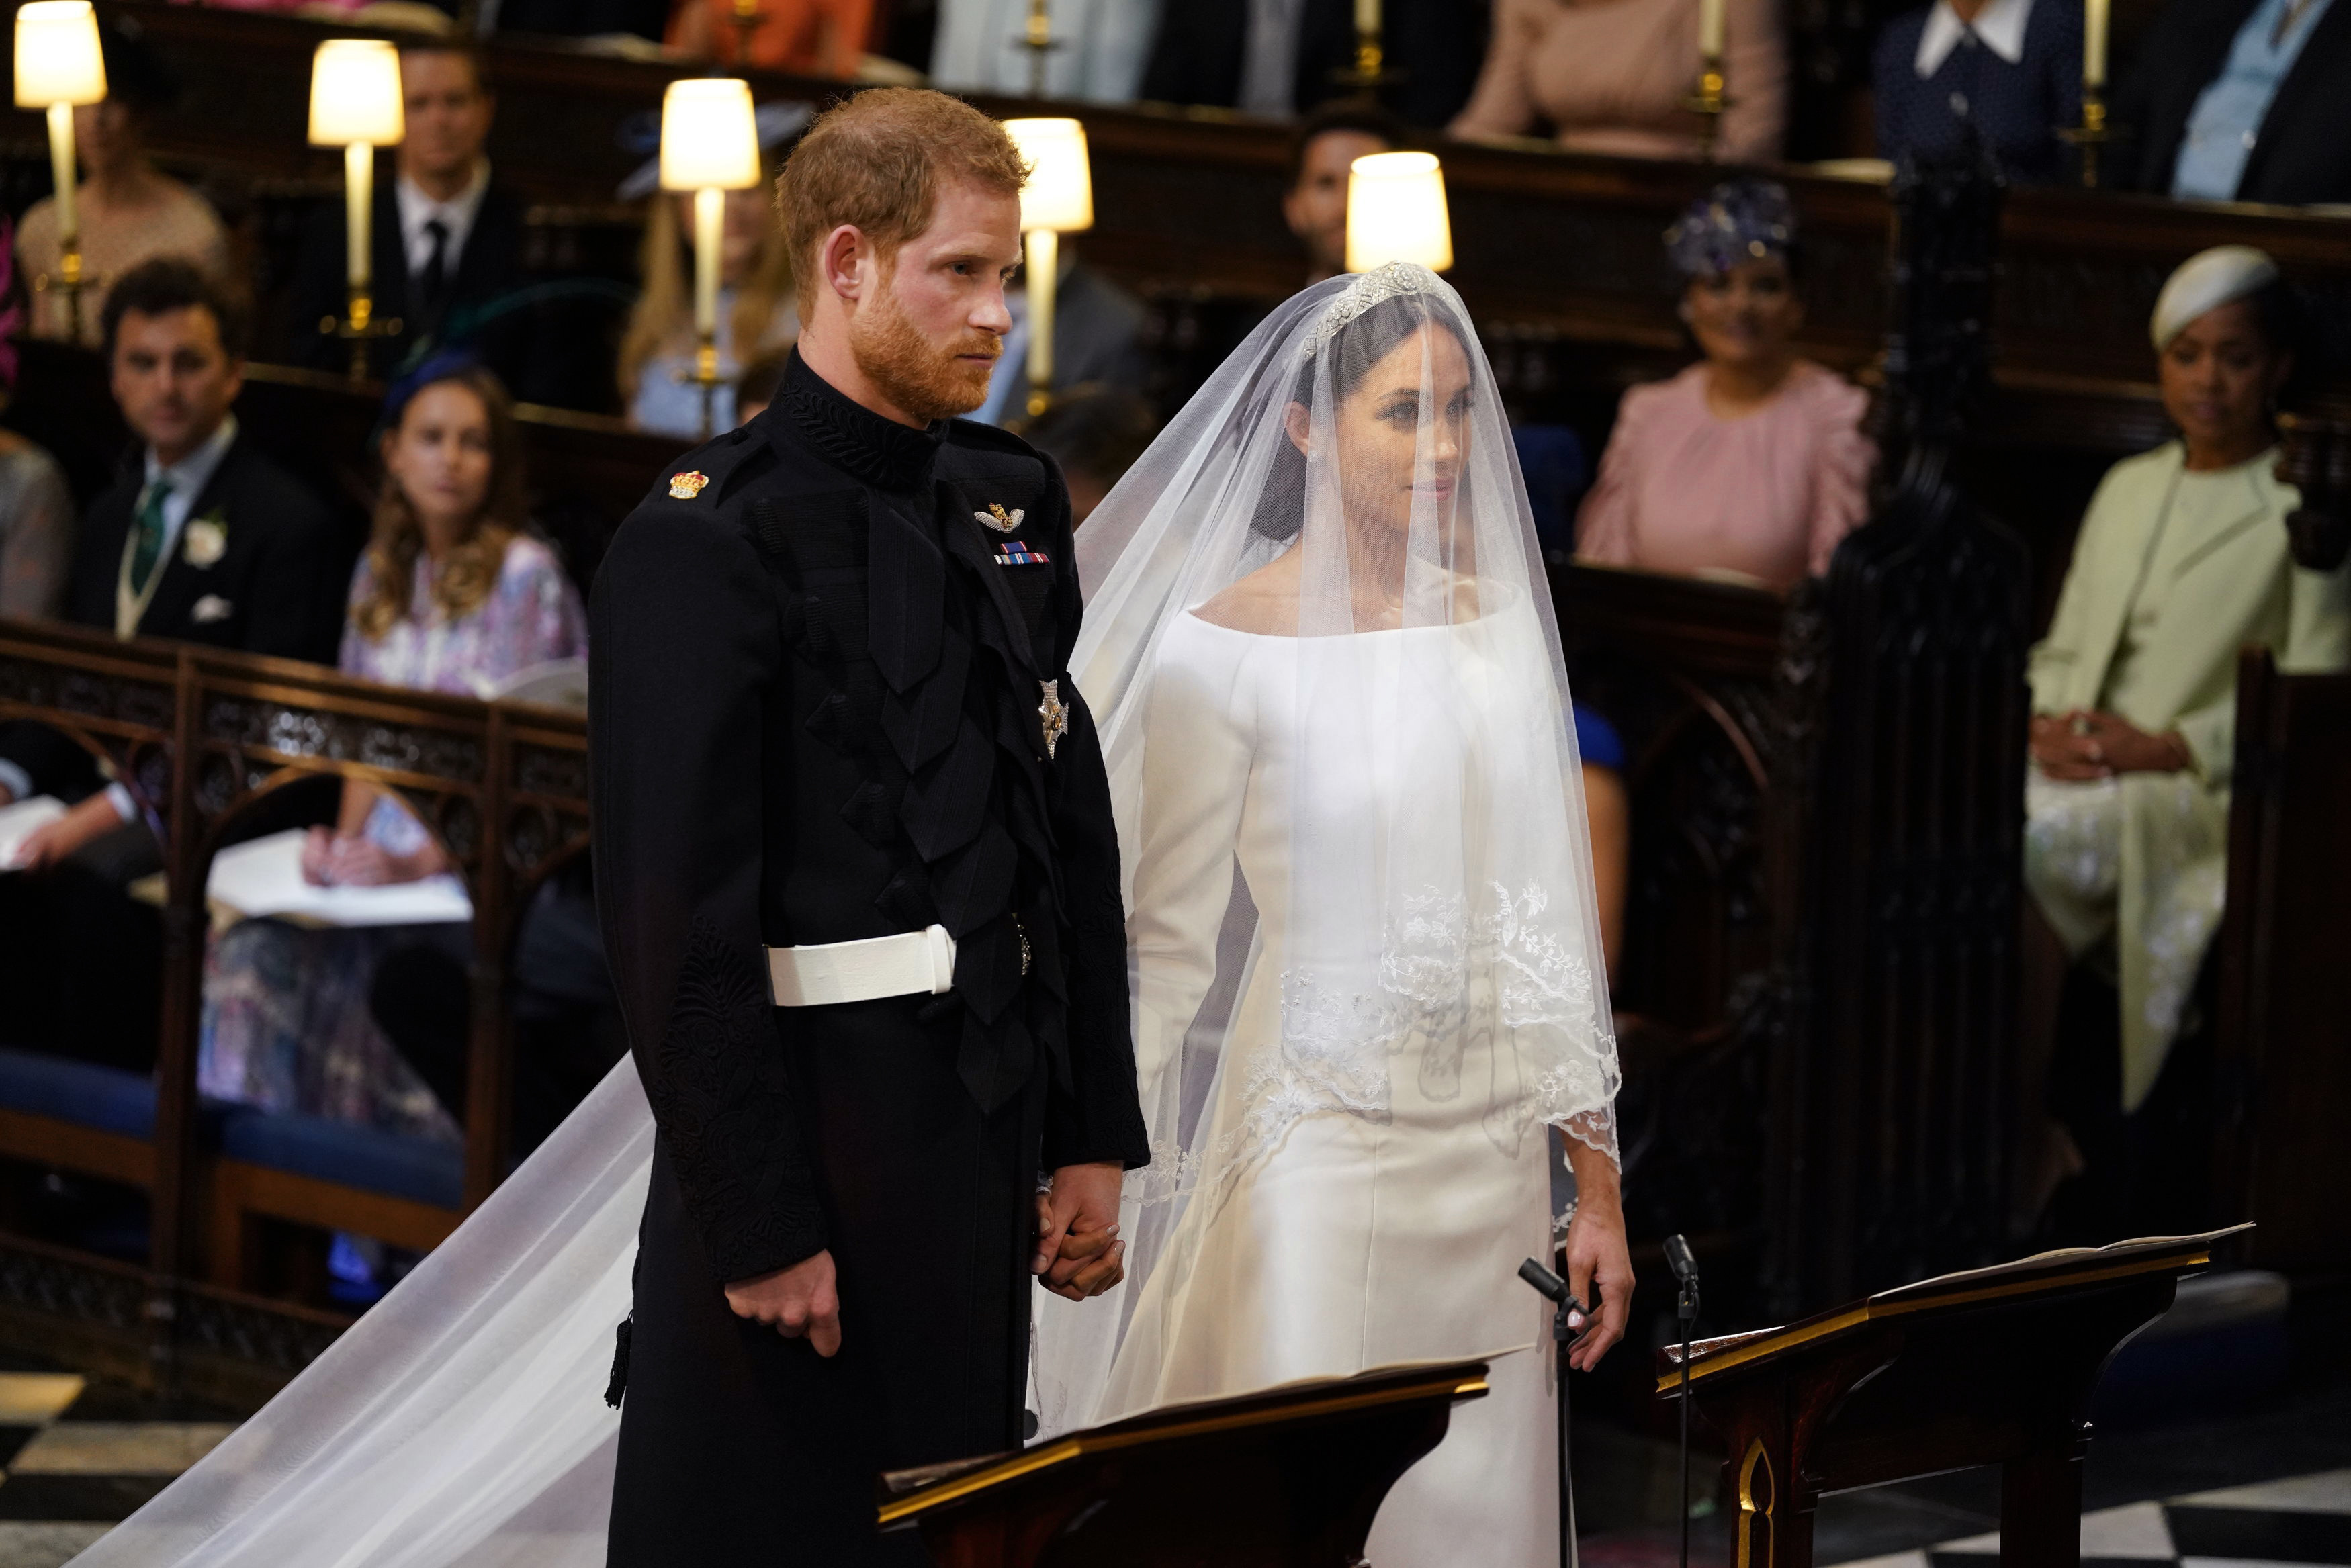 HAPPY FIRST WEDDING ANNIVERSARY TO HARRY AND MEGHAN!